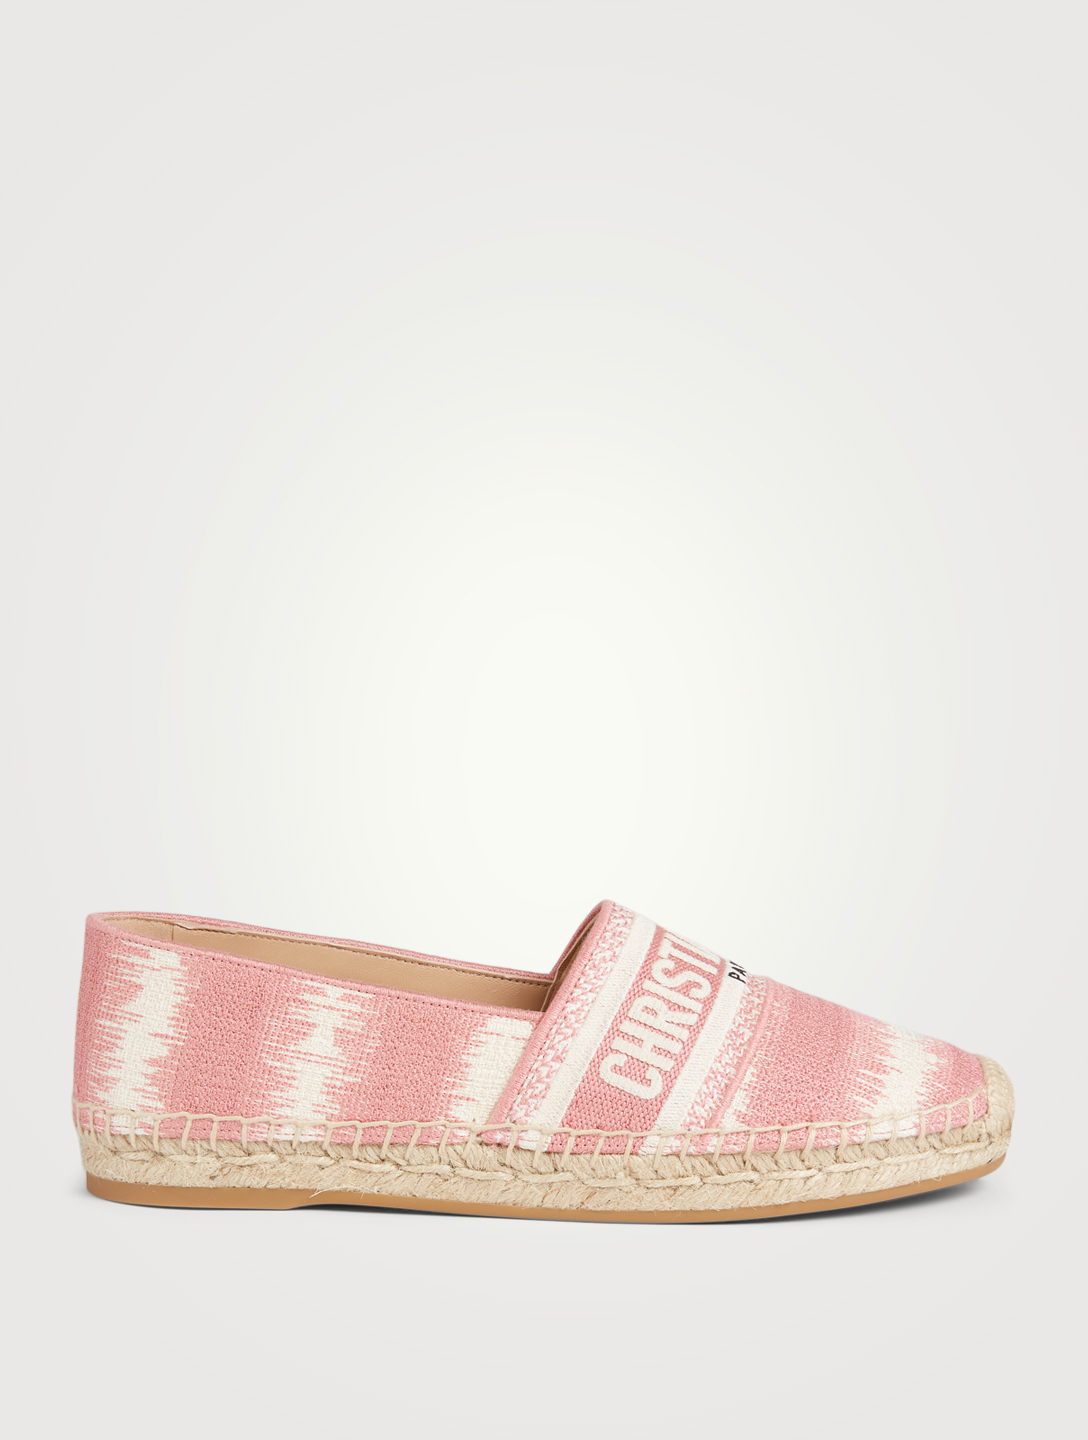 DIOR Granville D-Stripes Cotton Embroidery Espadrilles Women's Pink